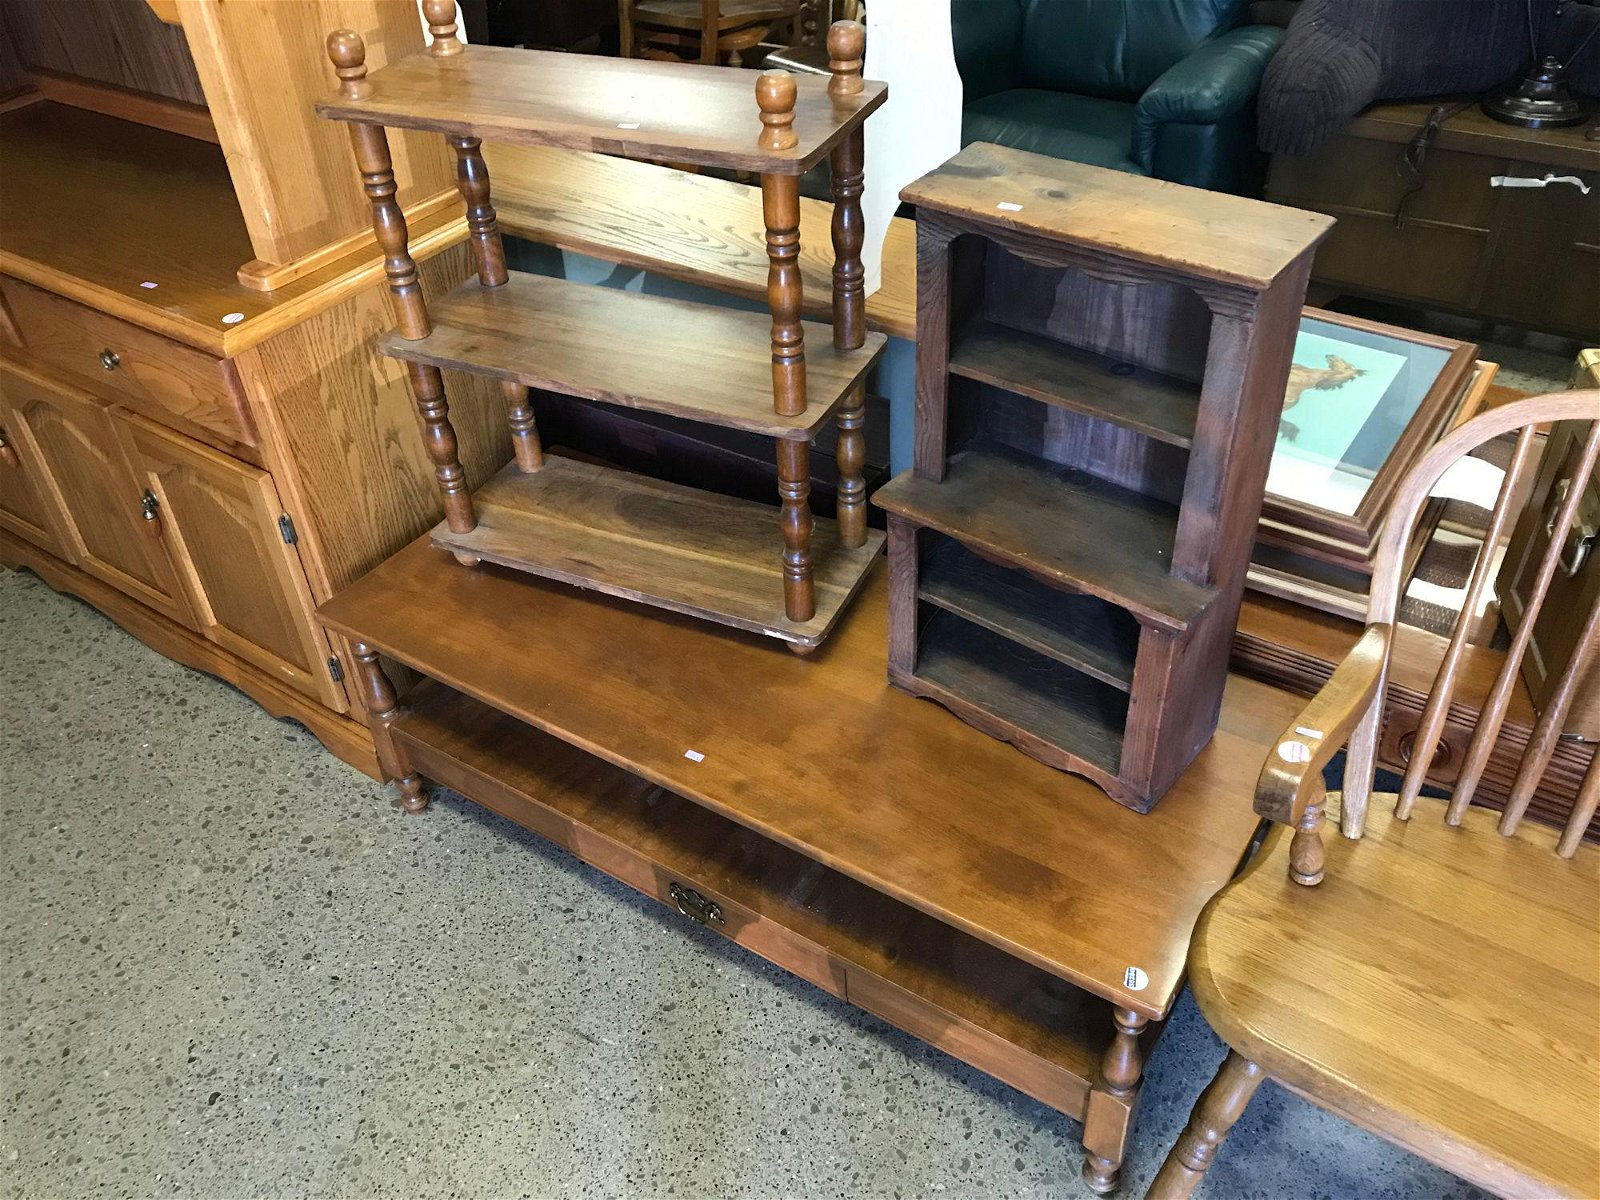 COFFEE TABLE, DOLL MINIATURE HUTCH, AND WODEN SHELVING